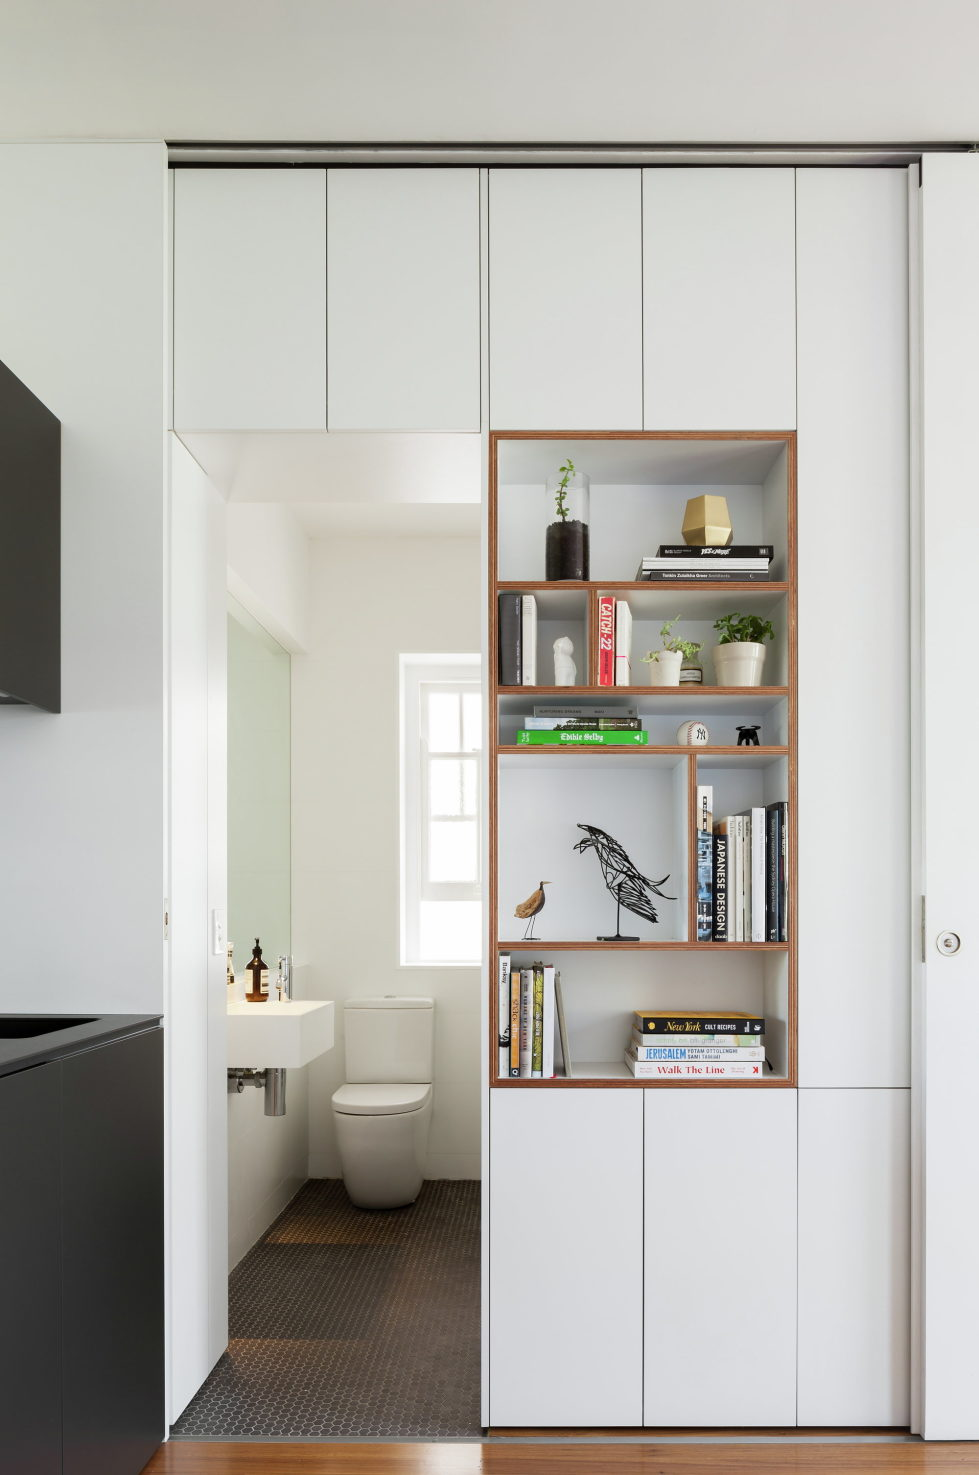 The Studio Of 27 Square Meters 5